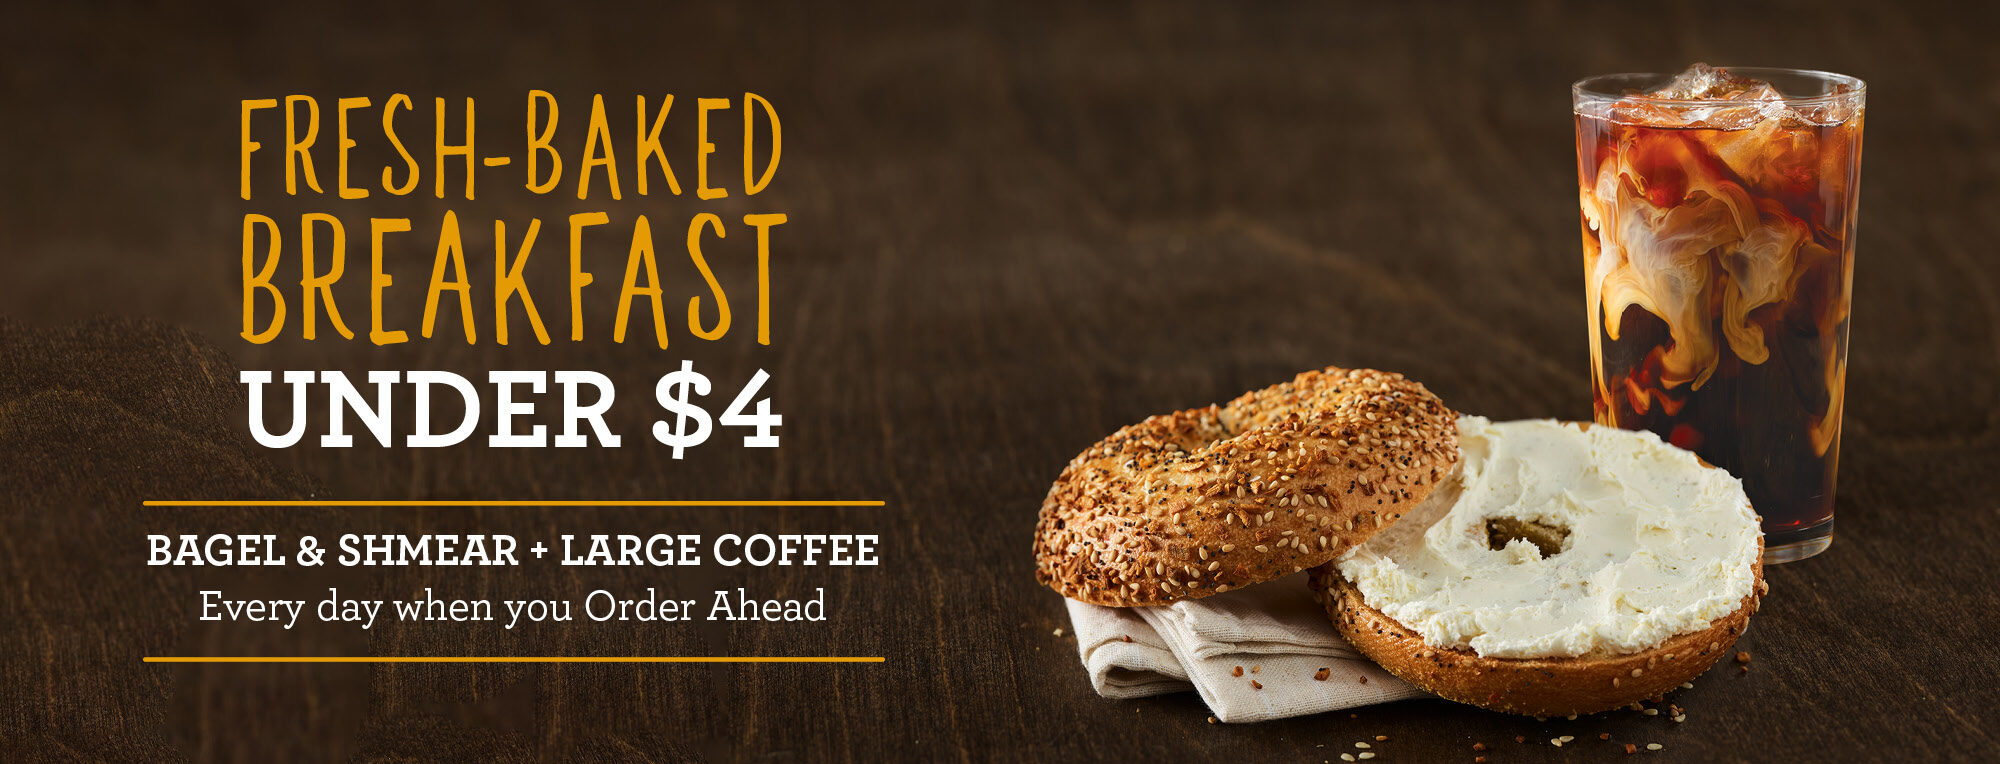 Fresh-Baked Breakfast Under $4 – Bagel & Shmear with Large Iced Coffee Every Day when you Order Ahead in the App at Einstein Bros. Bagels